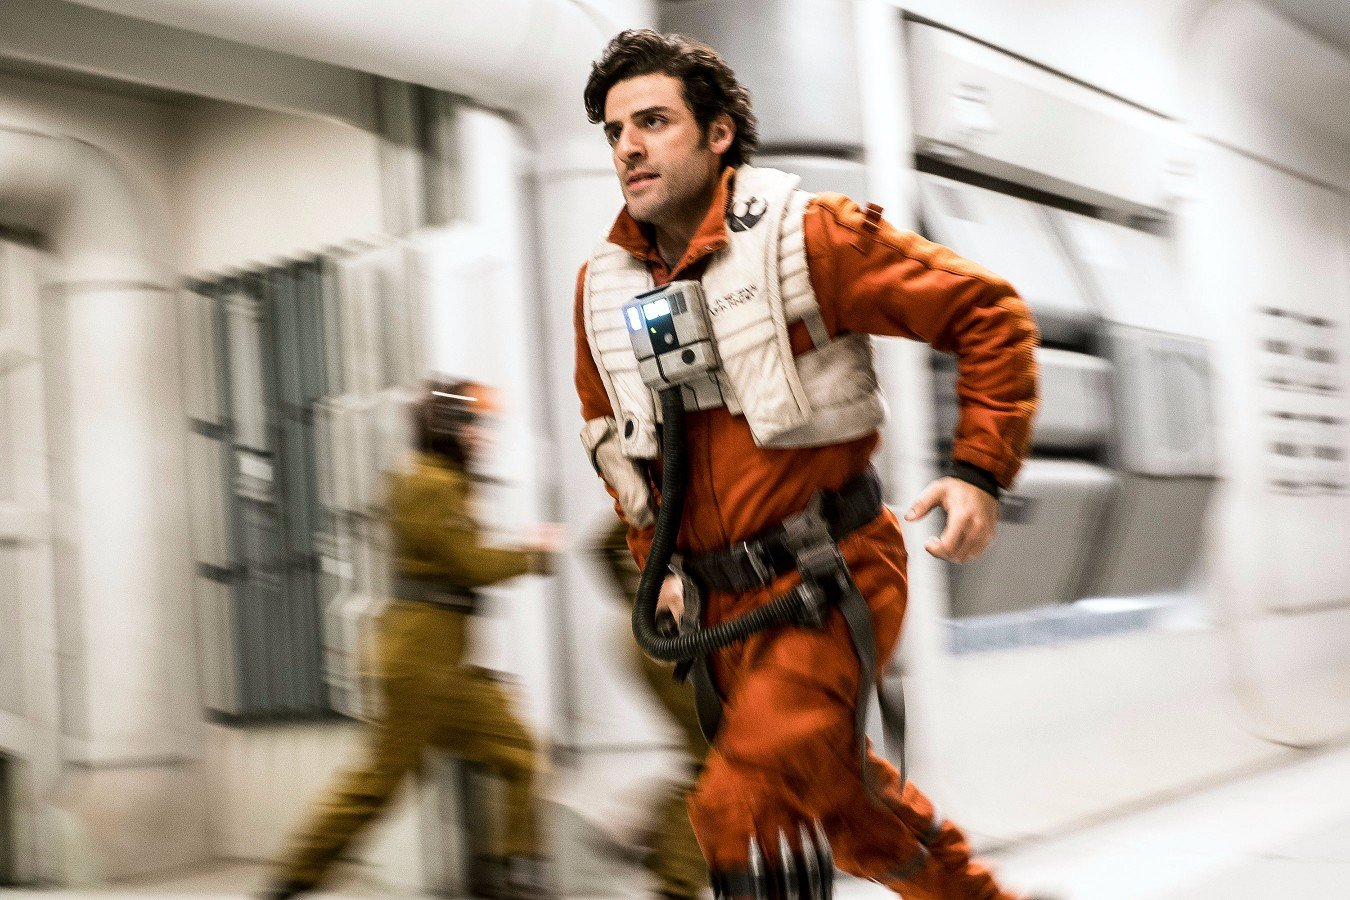 Rian Johnson May Bring Back Old Characters For His Planned Star Wars Trilogy